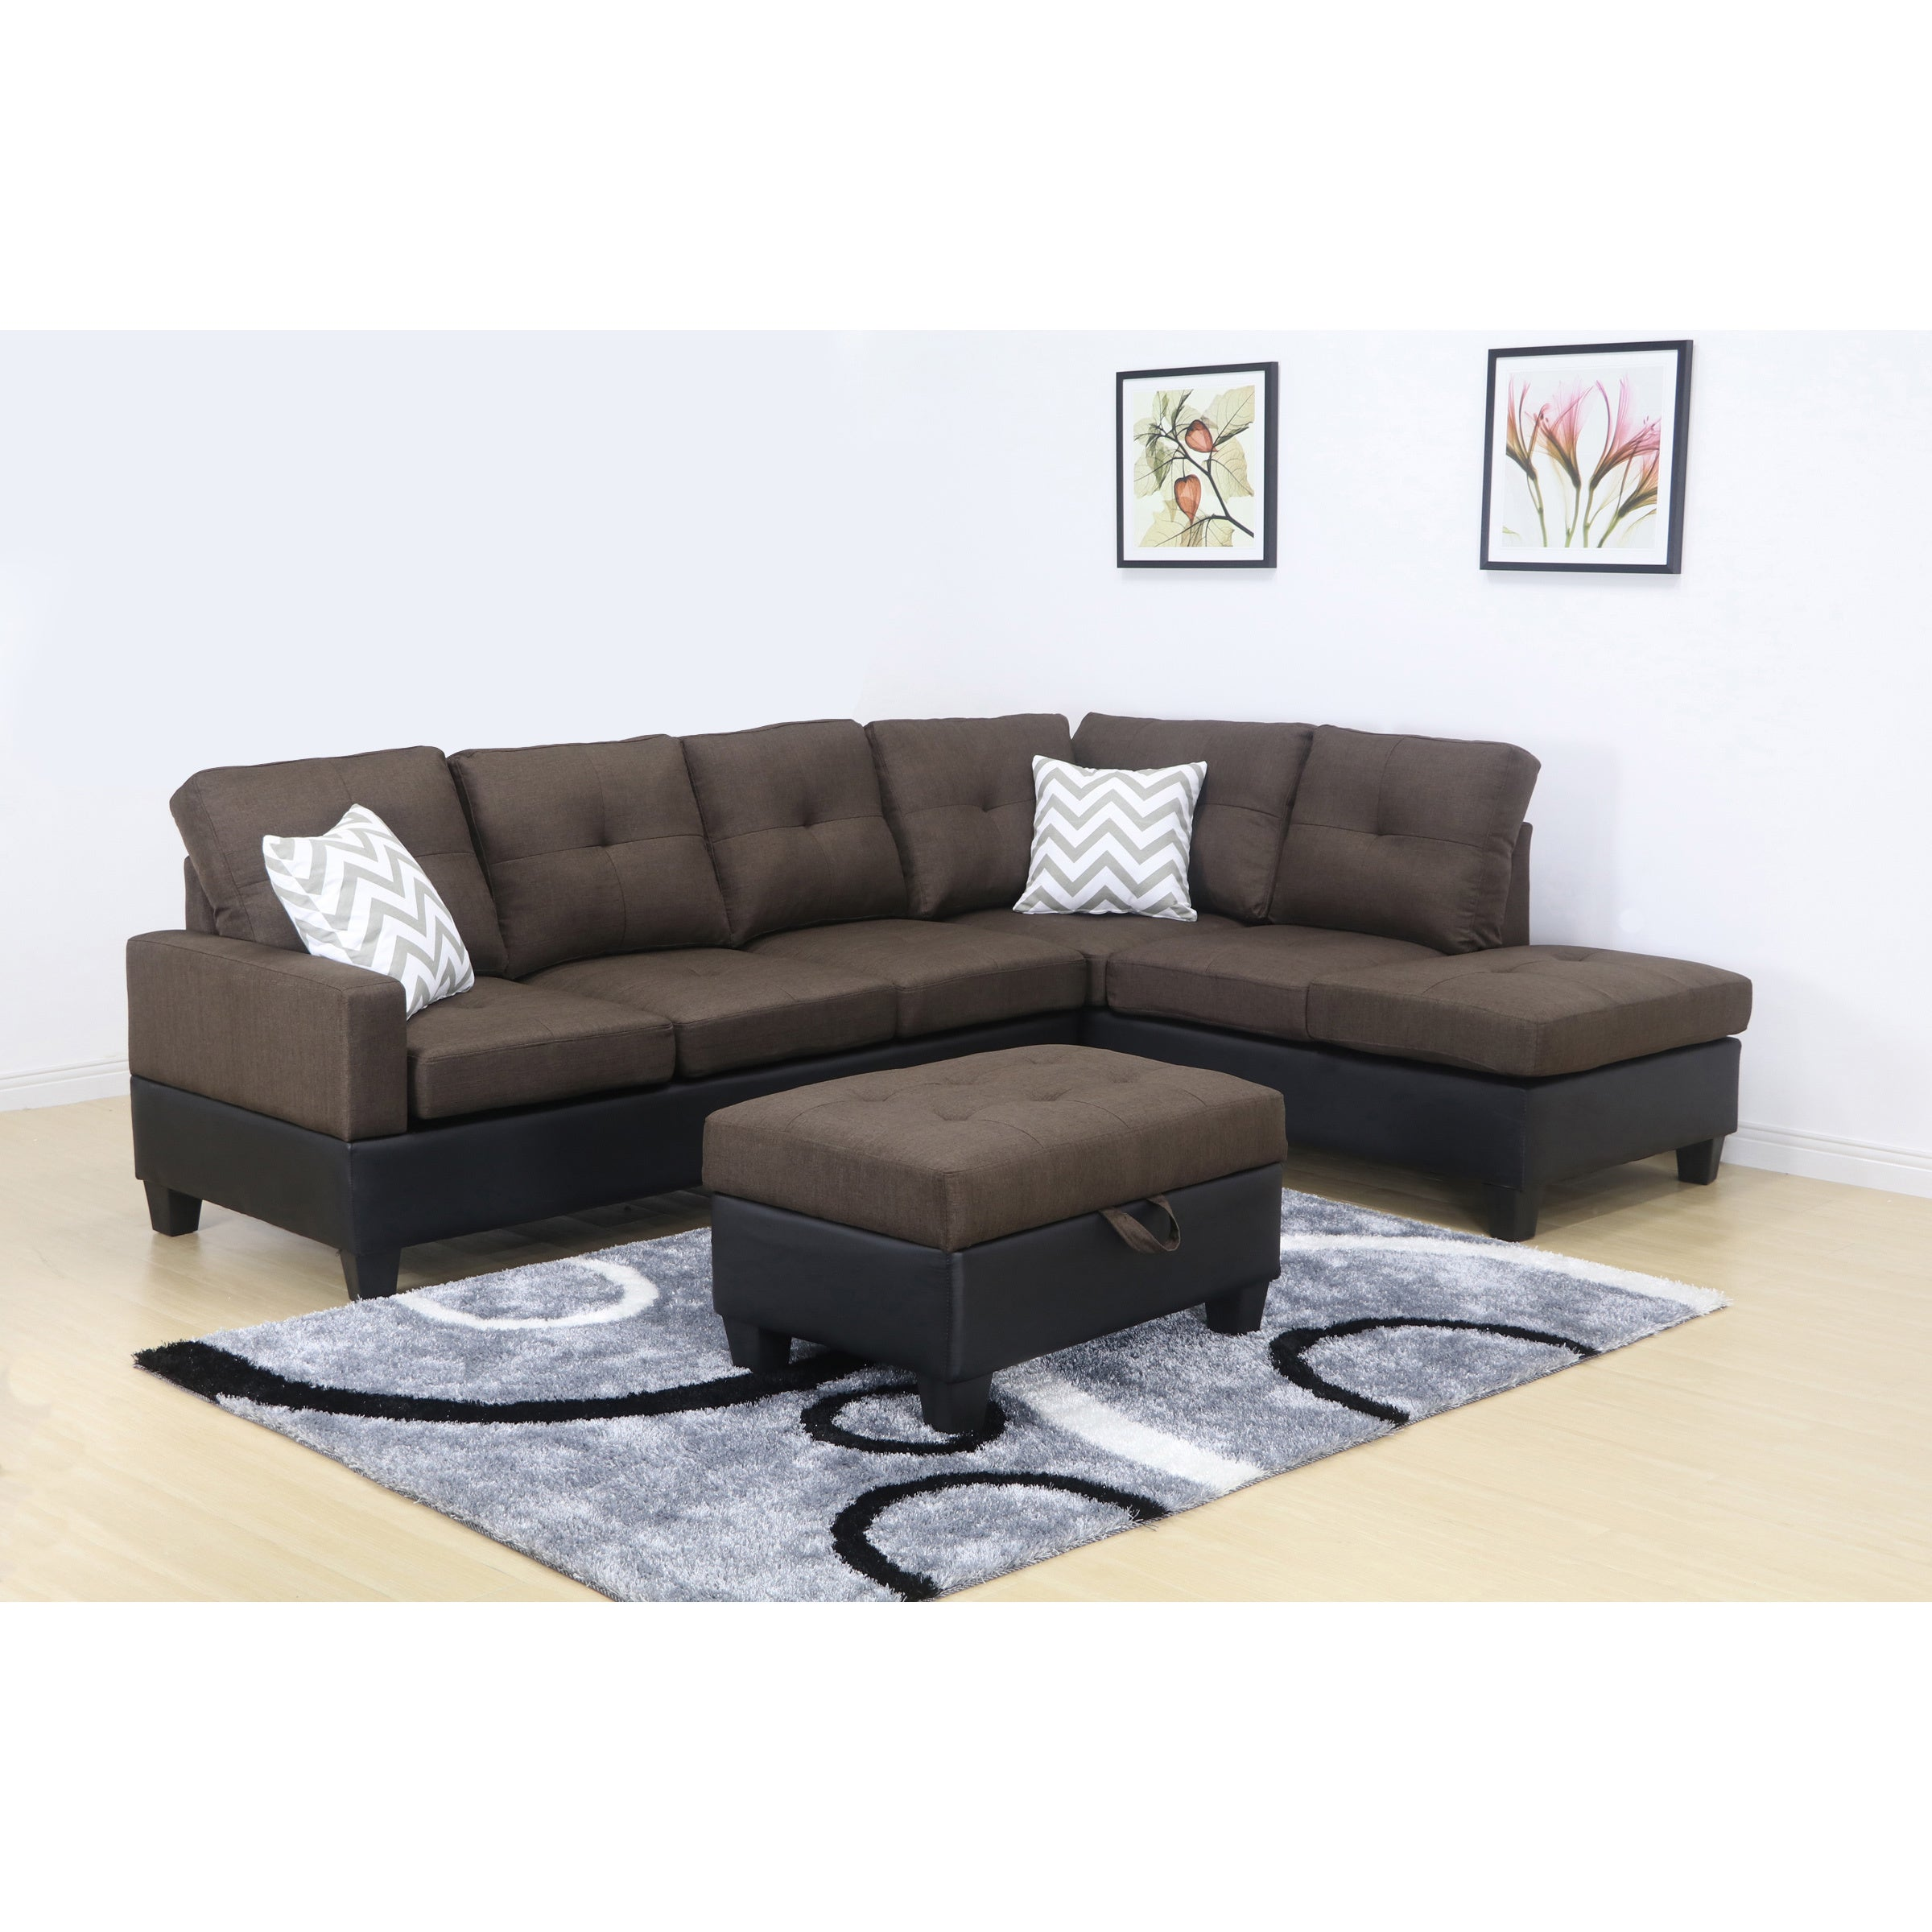 Shop charlie brown linen sectional sofa with storage ottoman free shipping today overstock com 12853607